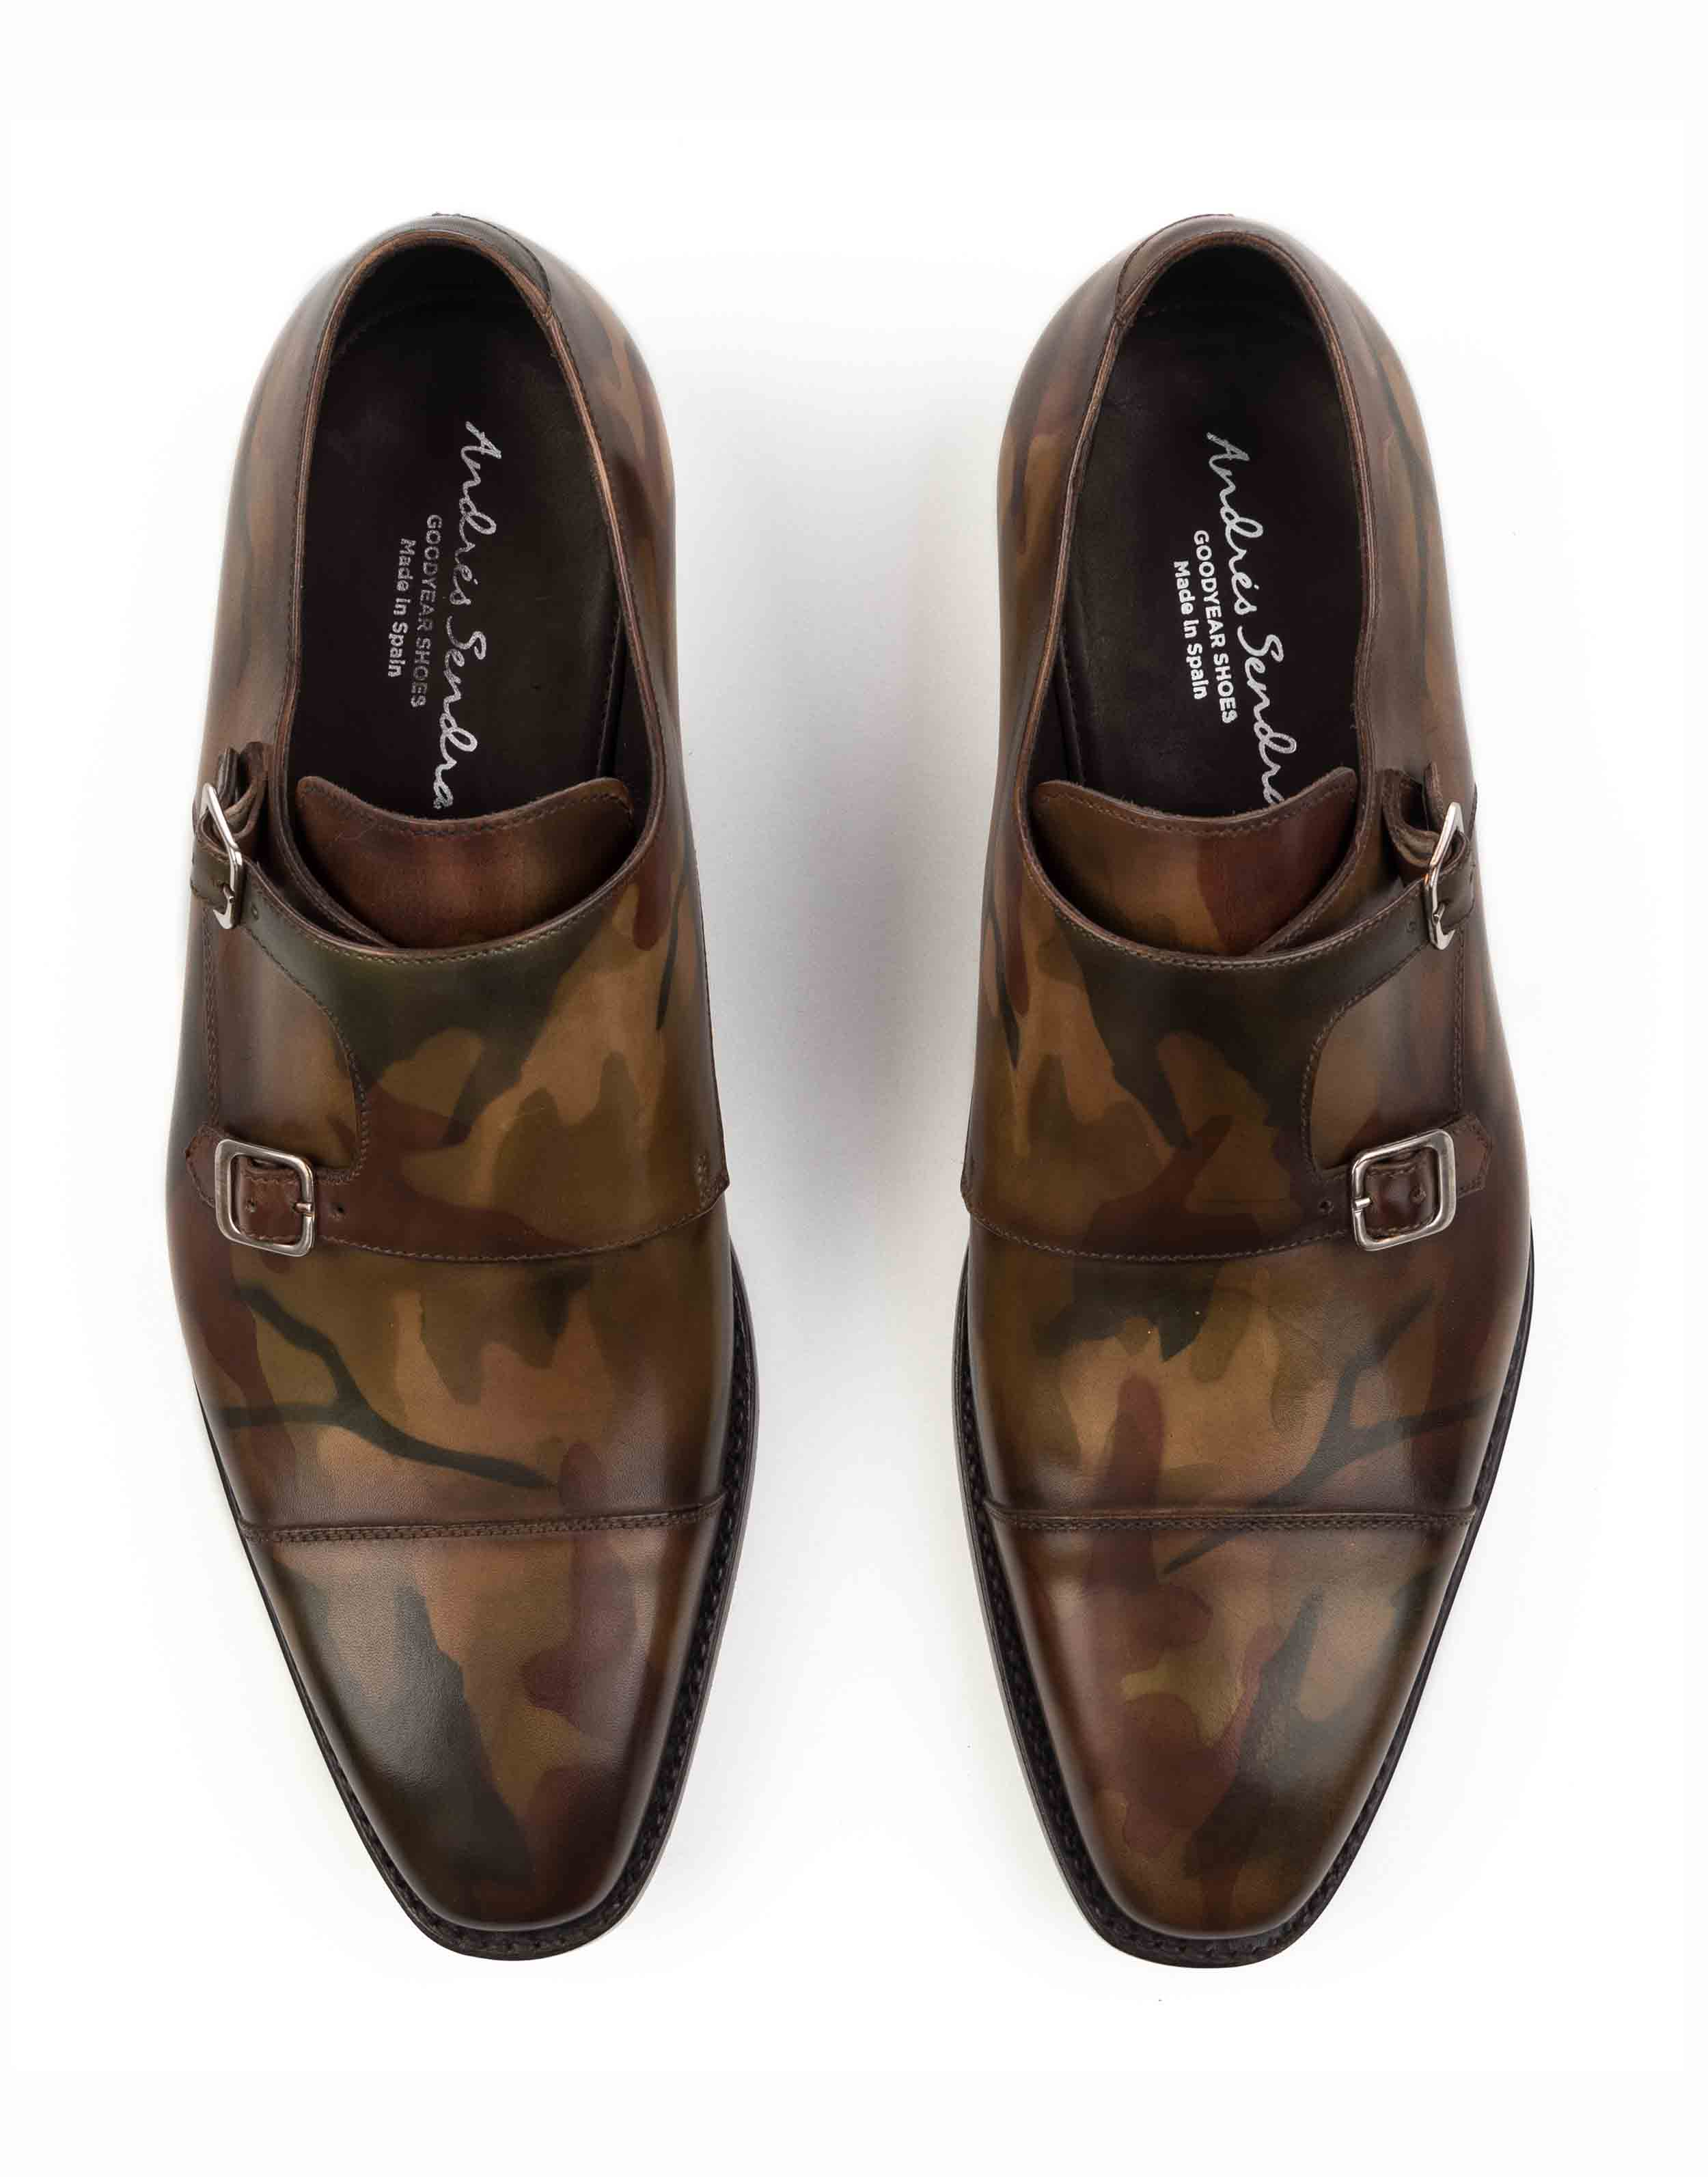 DOUBLE MONK STRAP SHOE4